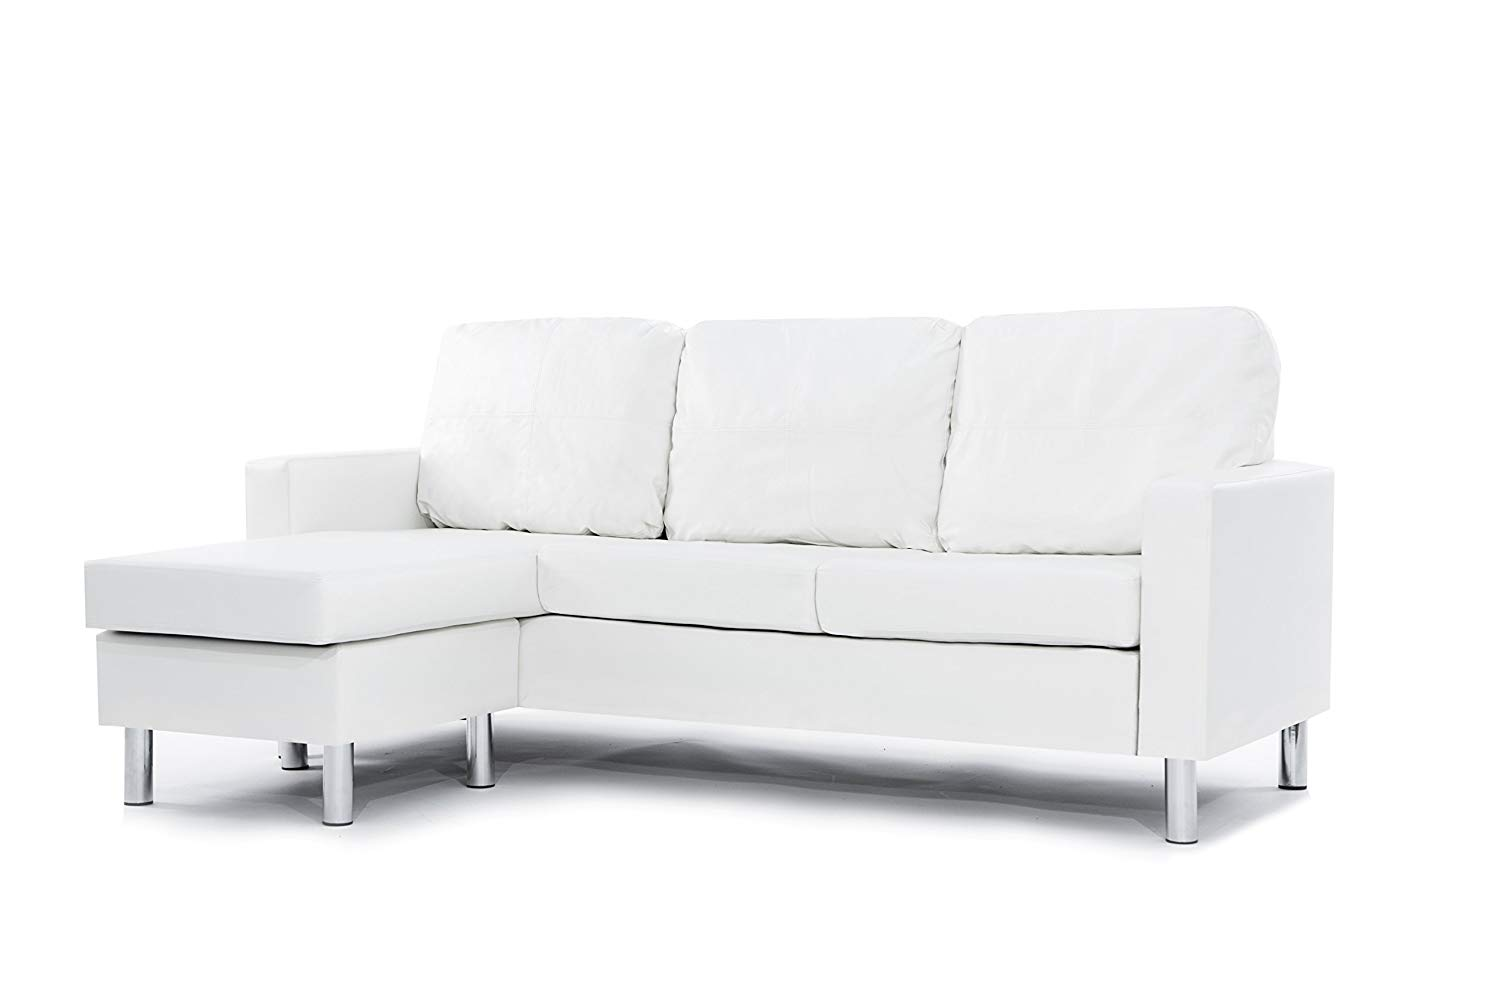 white sofa amazon.com: modern bonded leather sectional sofa - small space configurable UBBUDMZ